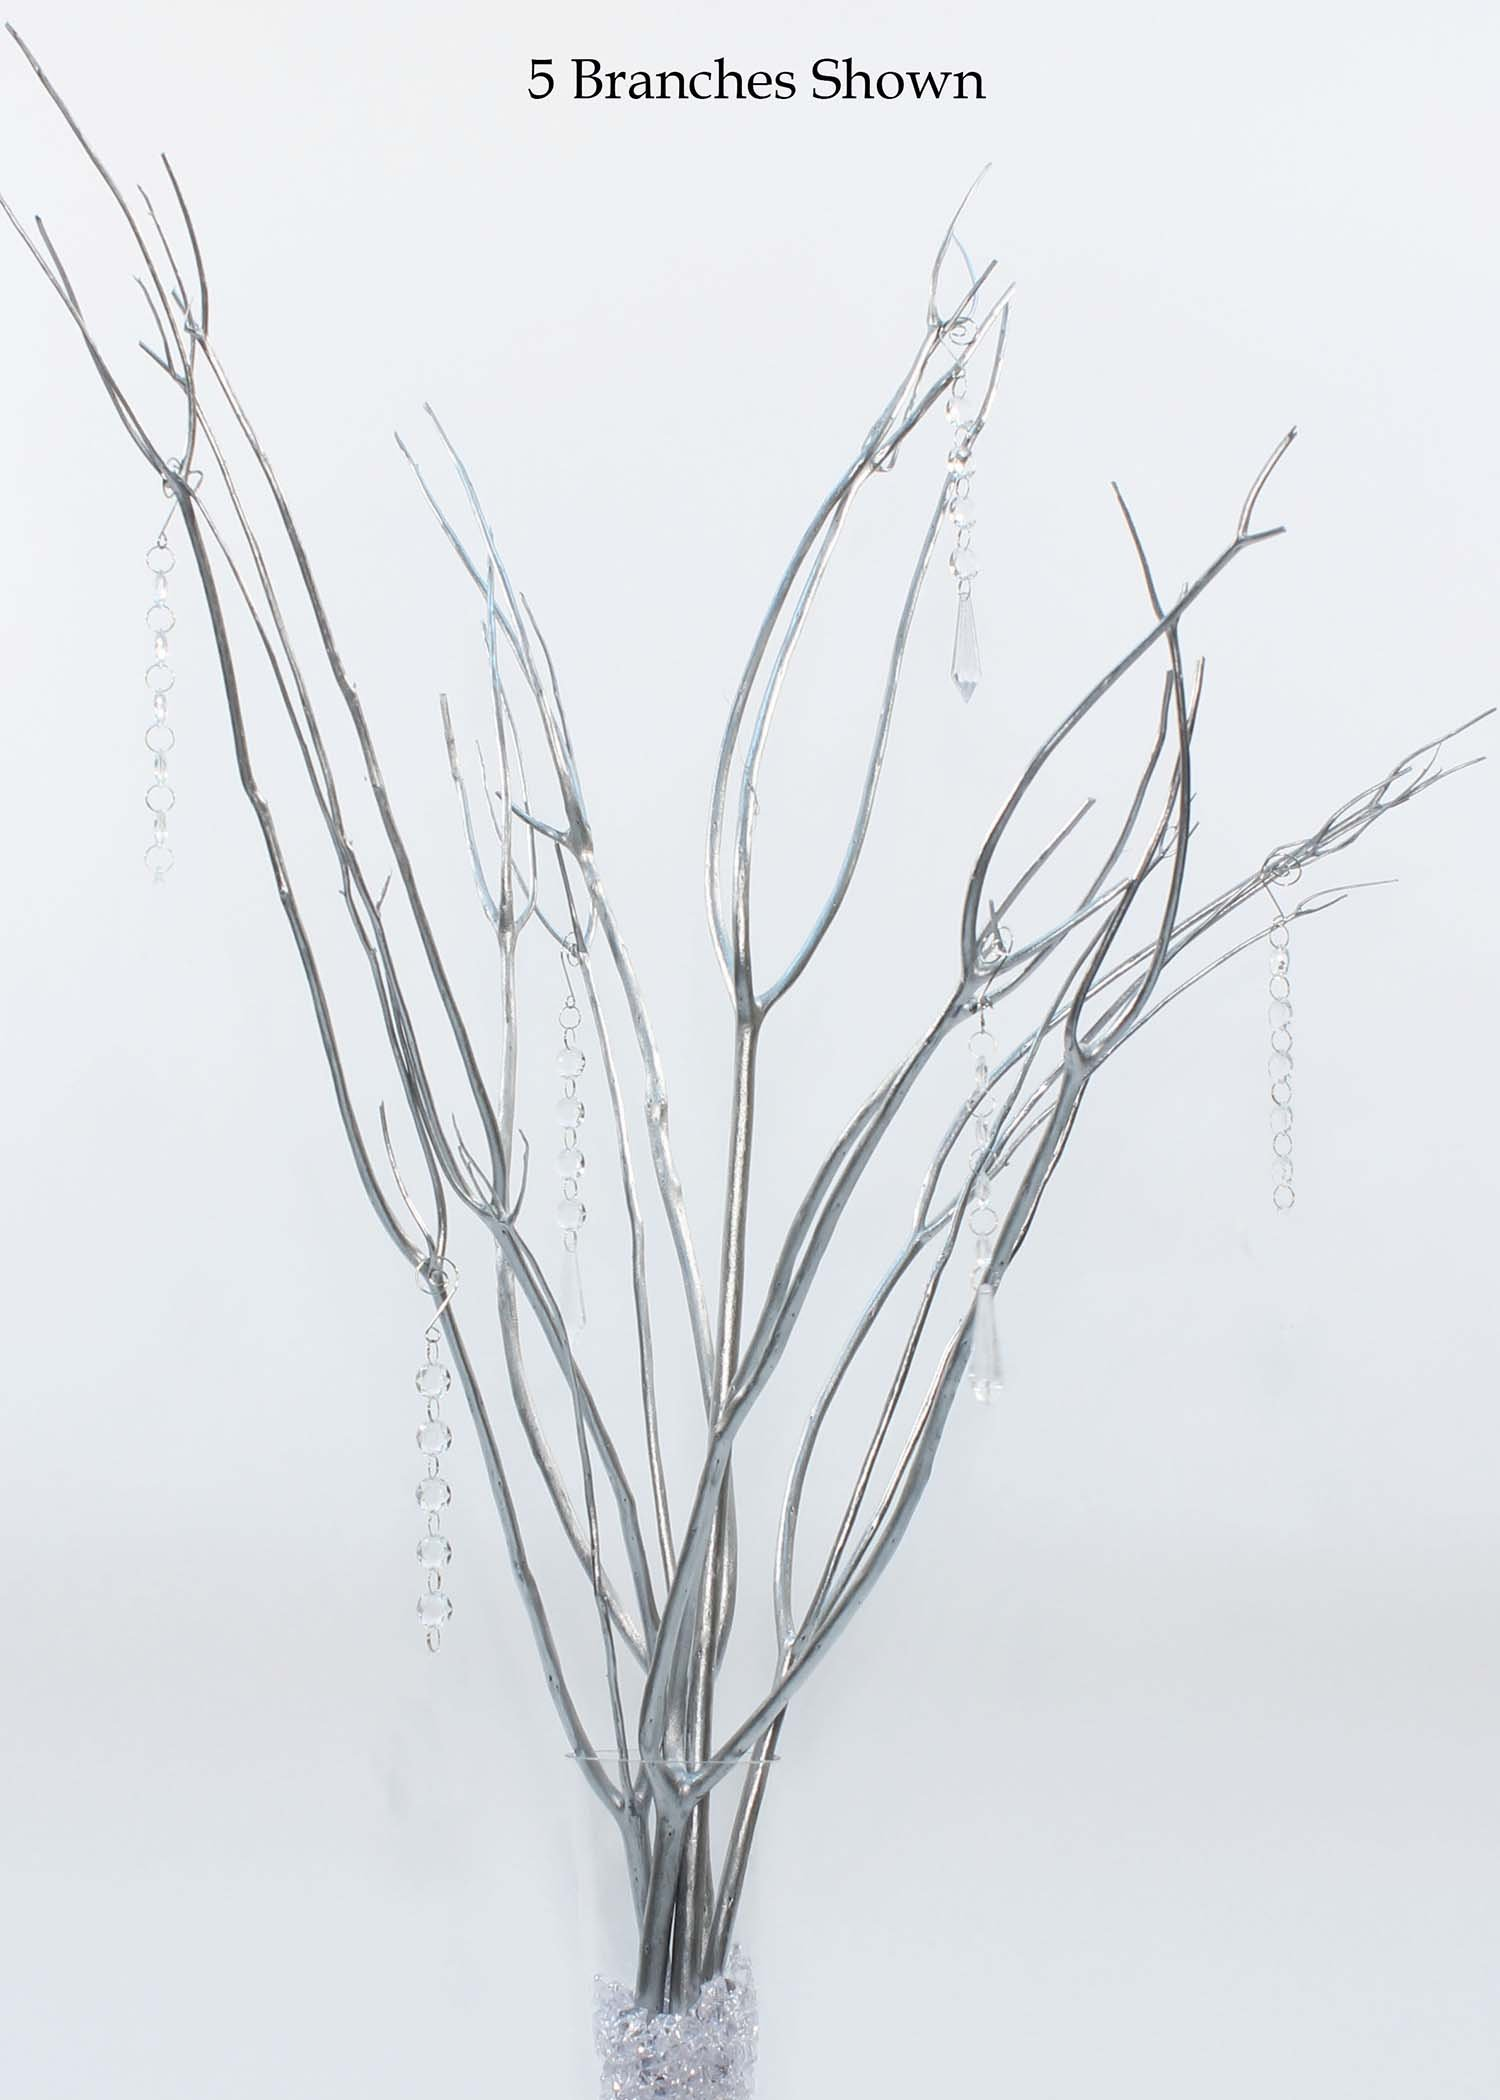 GreenFloralCrafts 3-4ft Tall Mitsumata 50 Silver Branches & Hanging Crystal Centerpiece Kit (Vase Not Included) by Green Floral Crafts